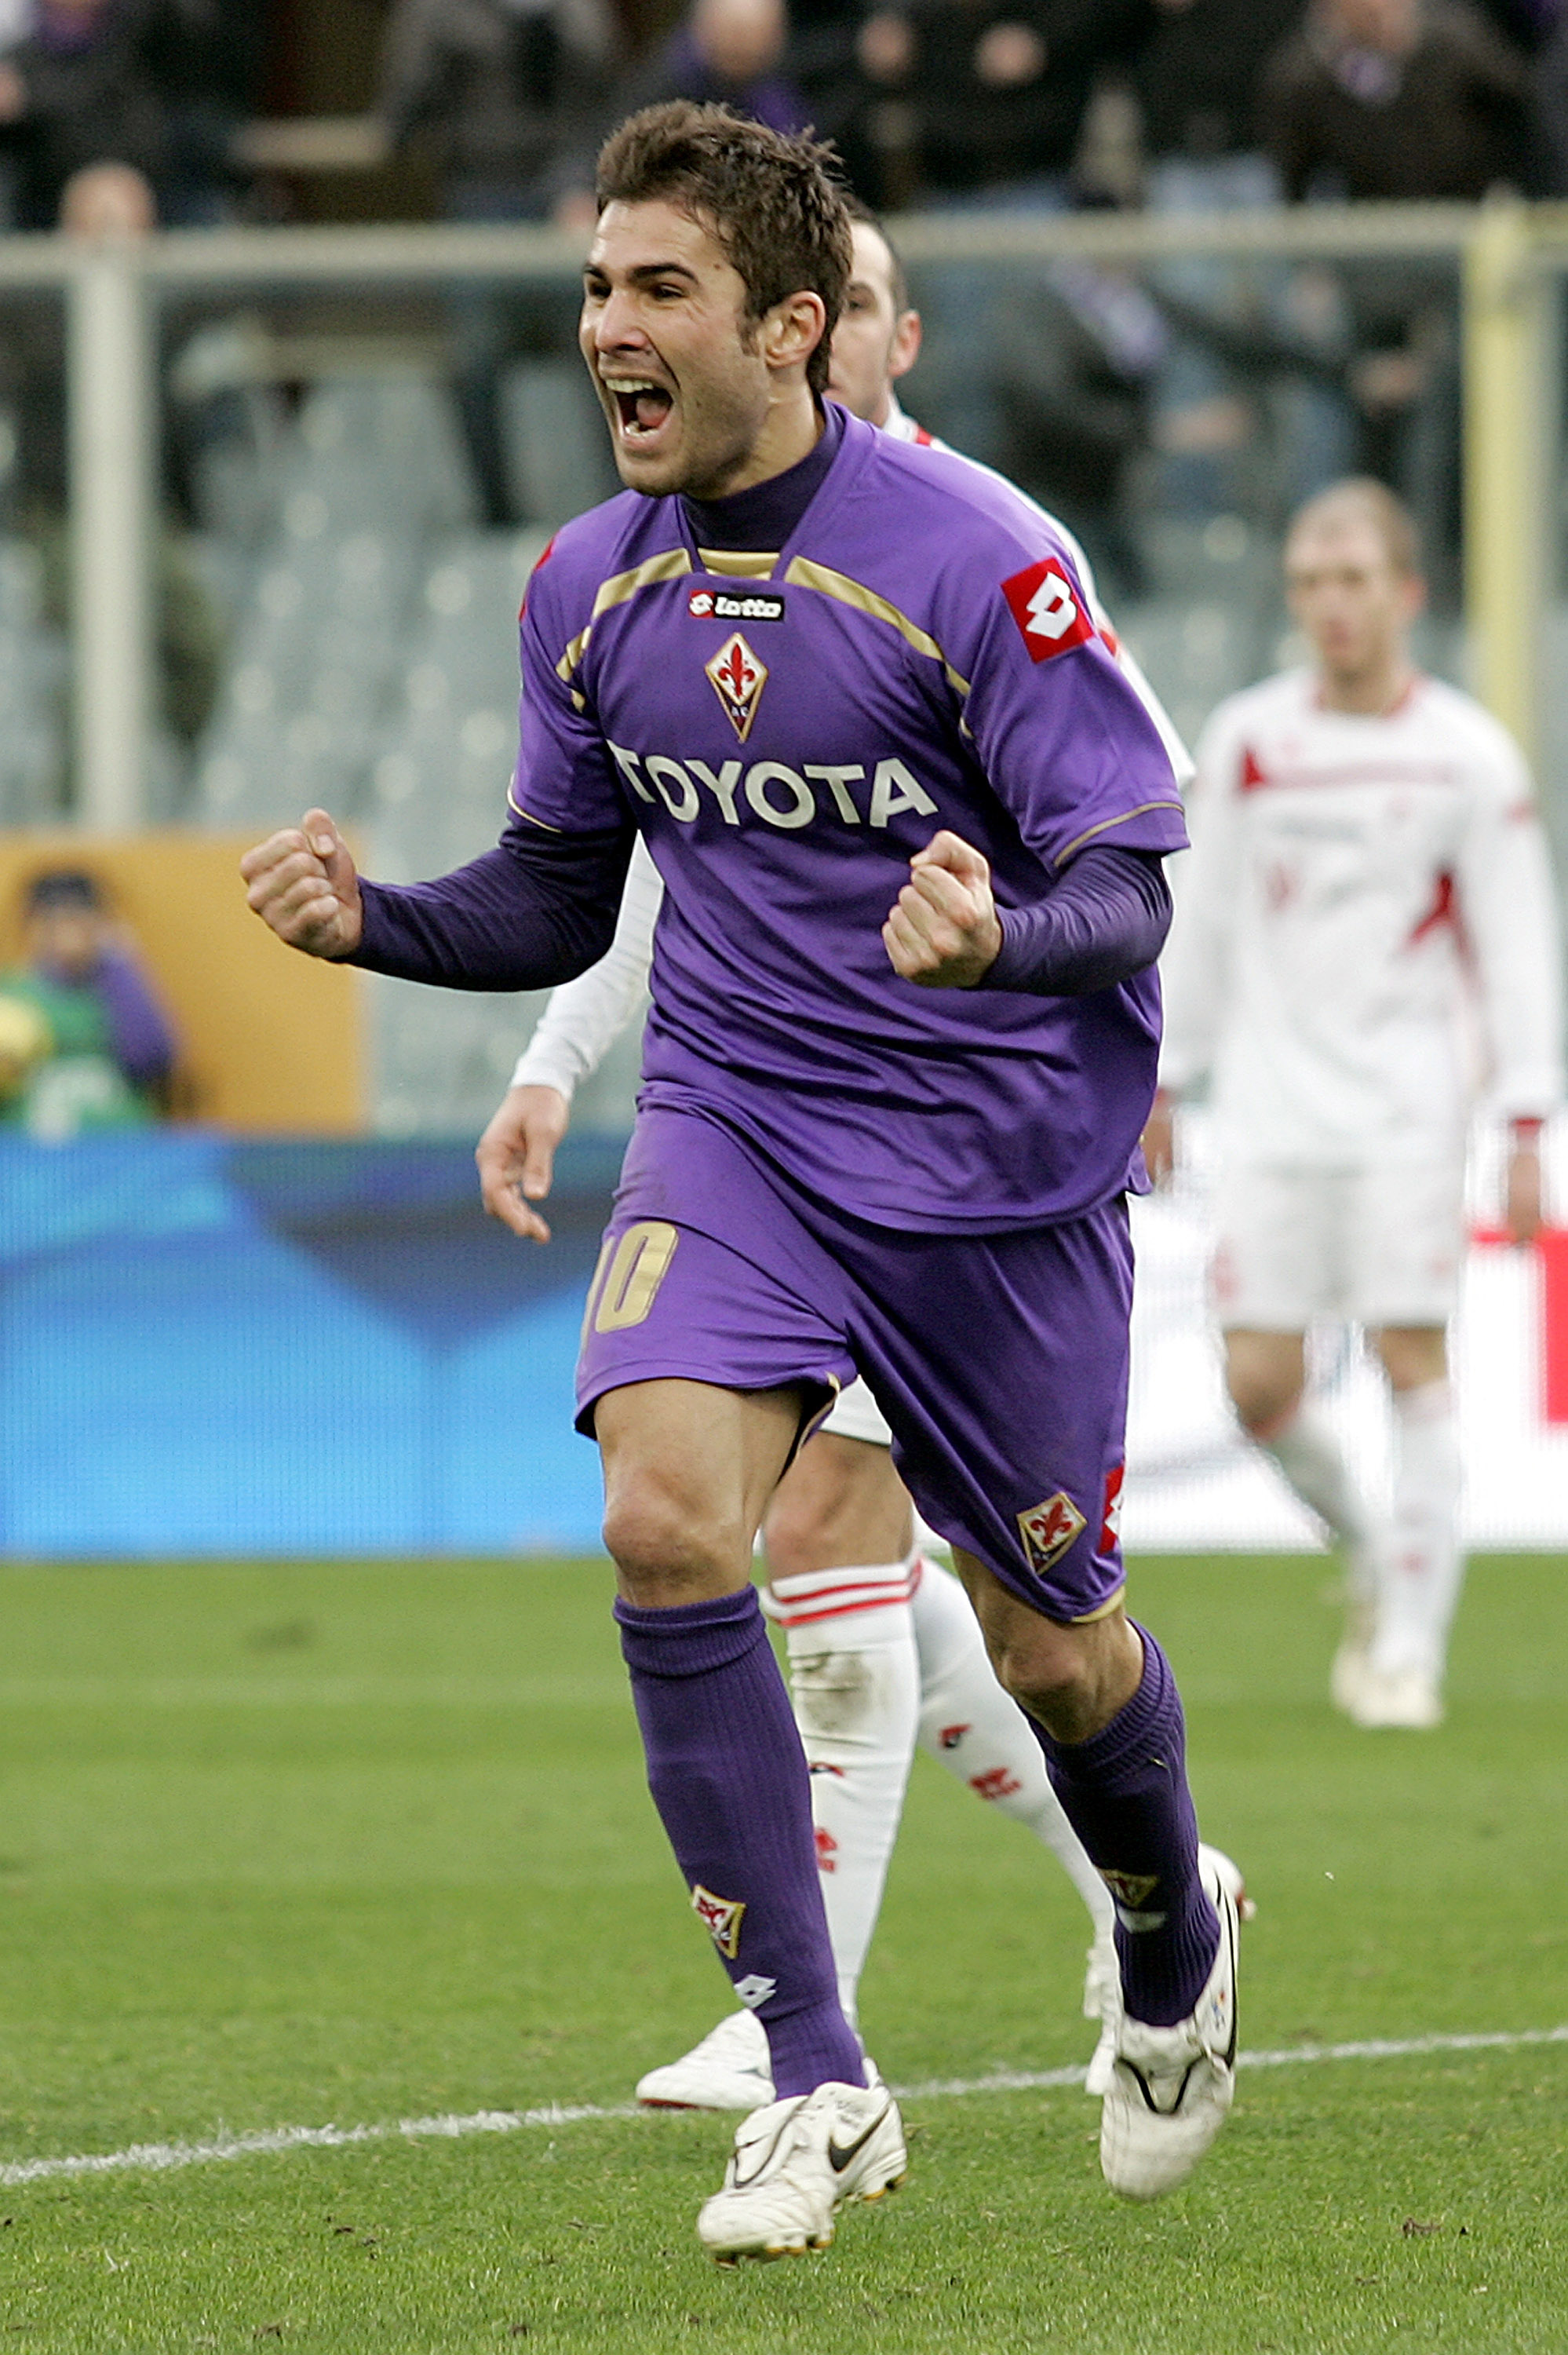 FLORENCE, ITALY - JANUARY 10:  Adrian Mutu of ACF Fiorentina celebrates after scoring a goal during the Serie A match between Fiorentina and Bari at Stadio Artemio Franchi on January 10, 2010 in Florence, Italy.  (Photo by Gabriele Maltinti/Getty Images)